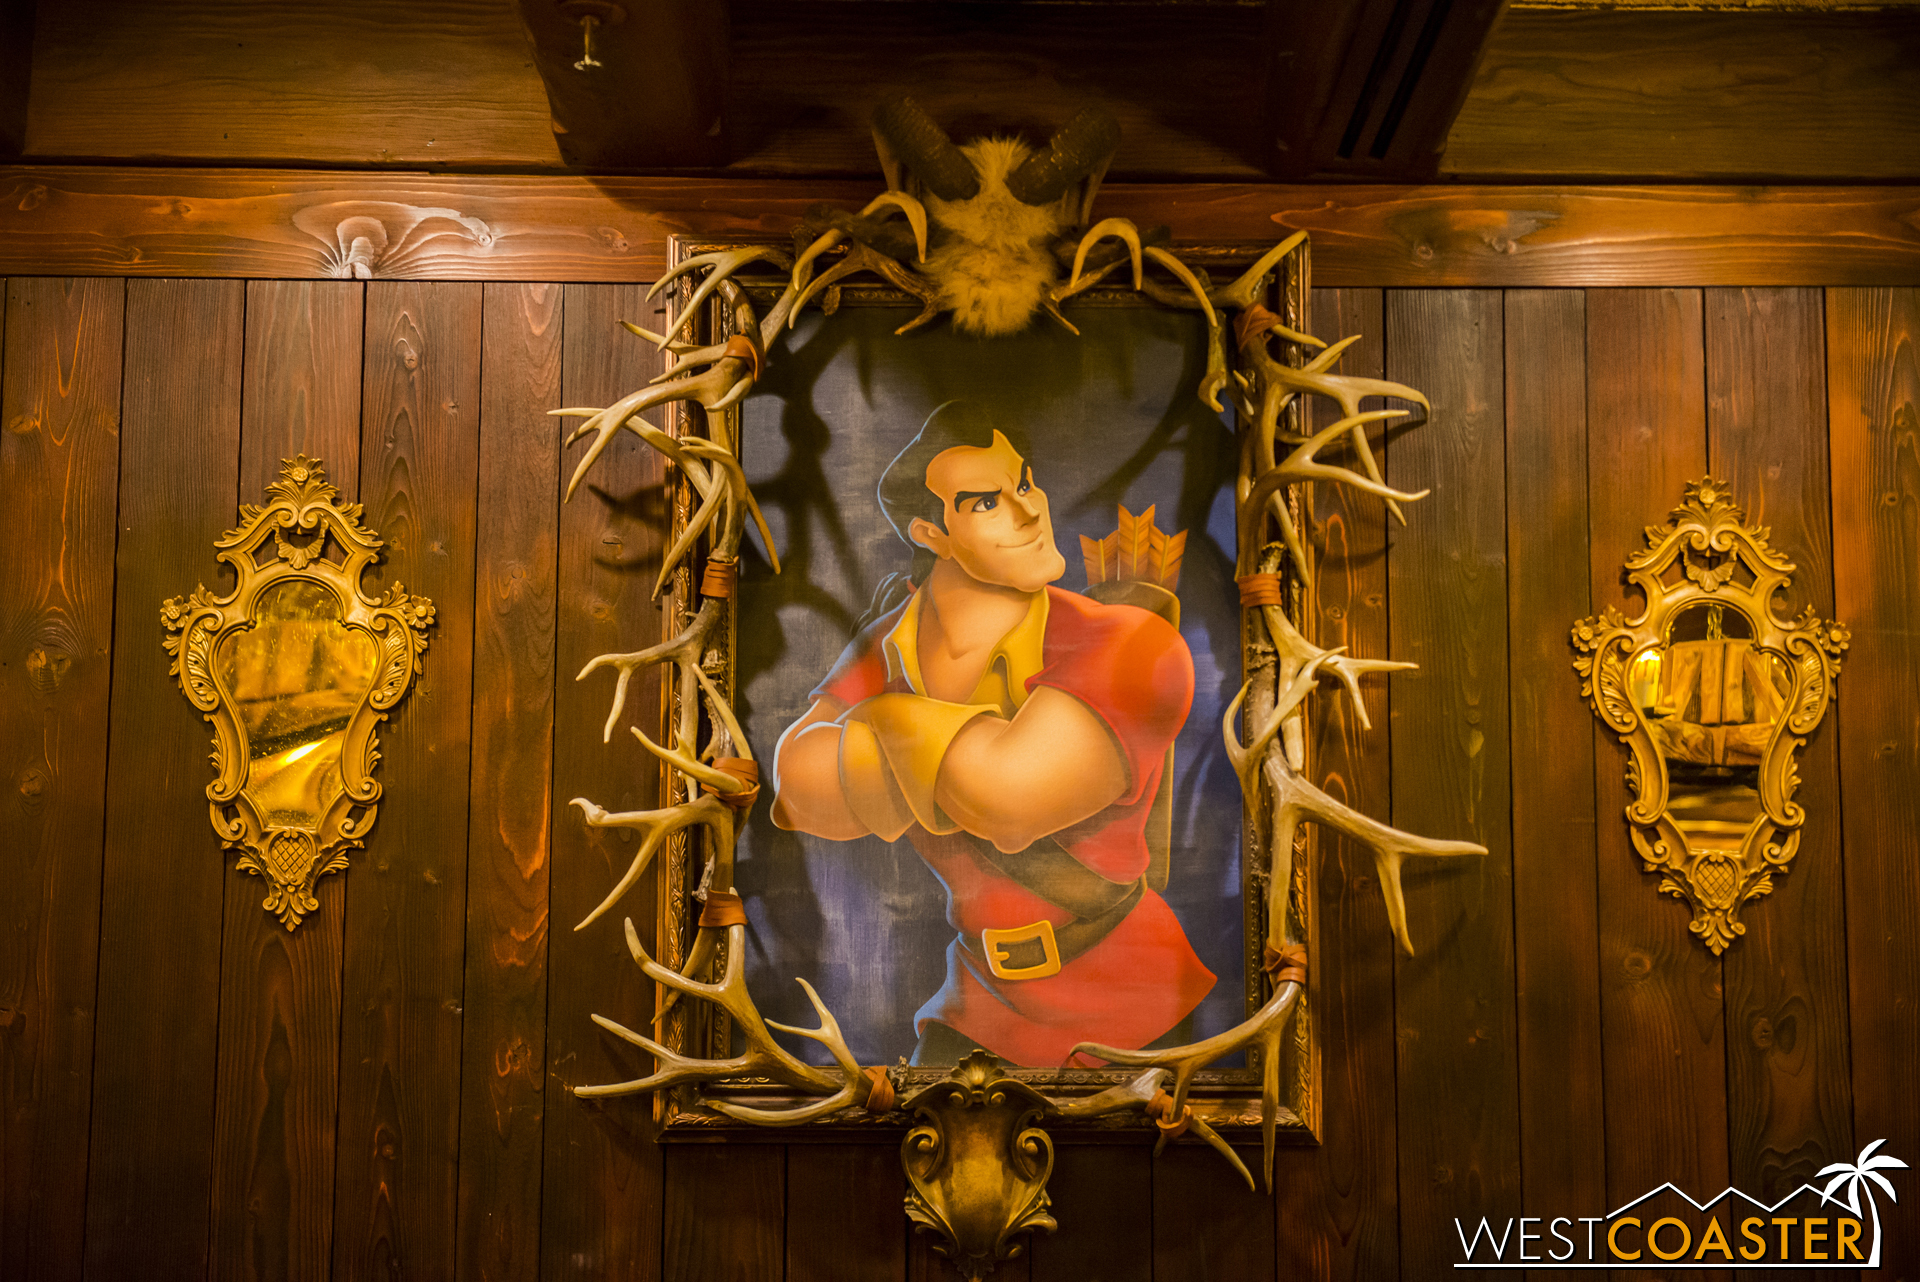 Gaston's presence is in full effect as a framed drawn portrait on one wall.